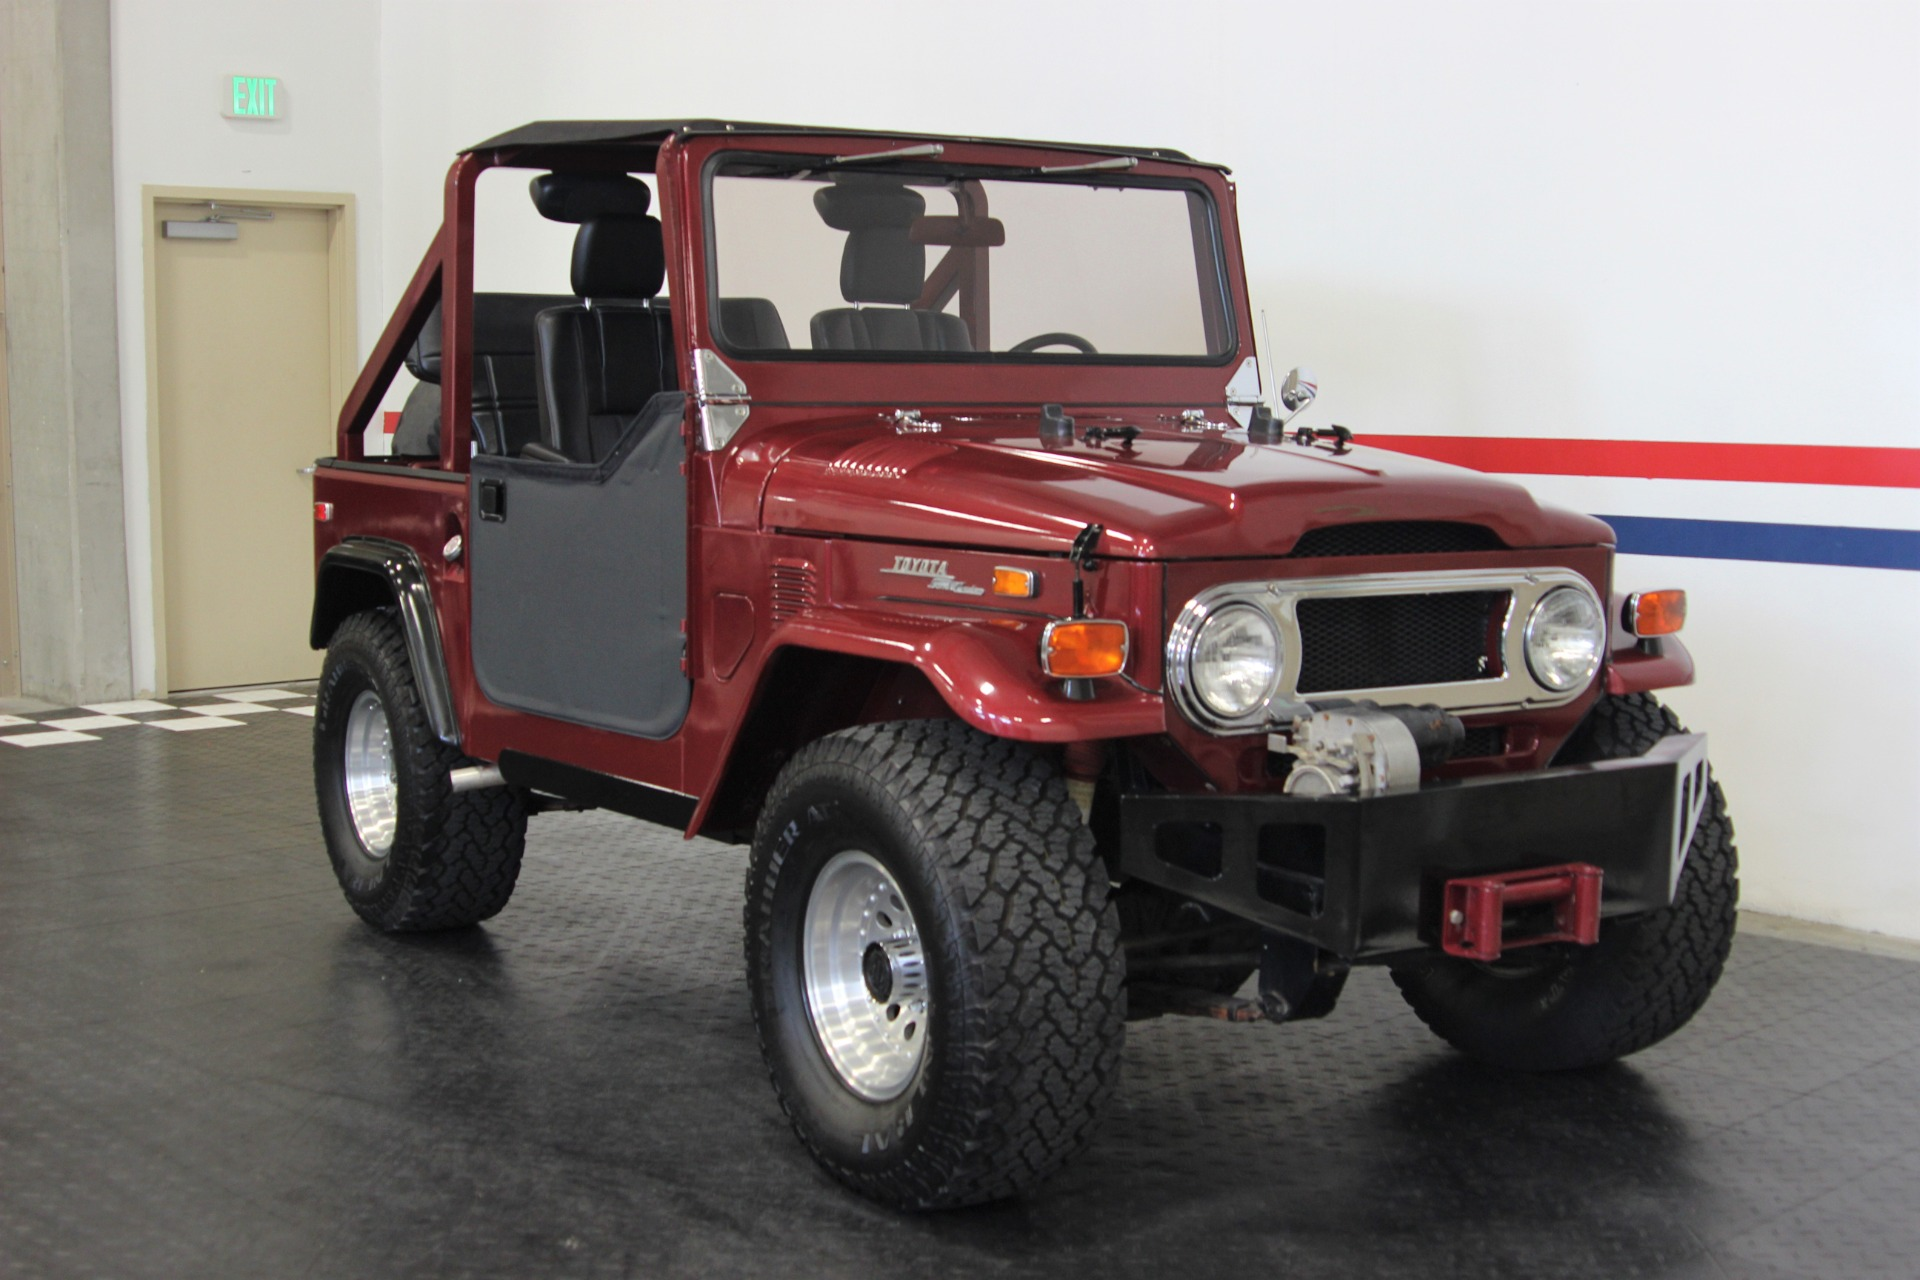 Used-1972-Toyota-Land-Cruiser-FJ40